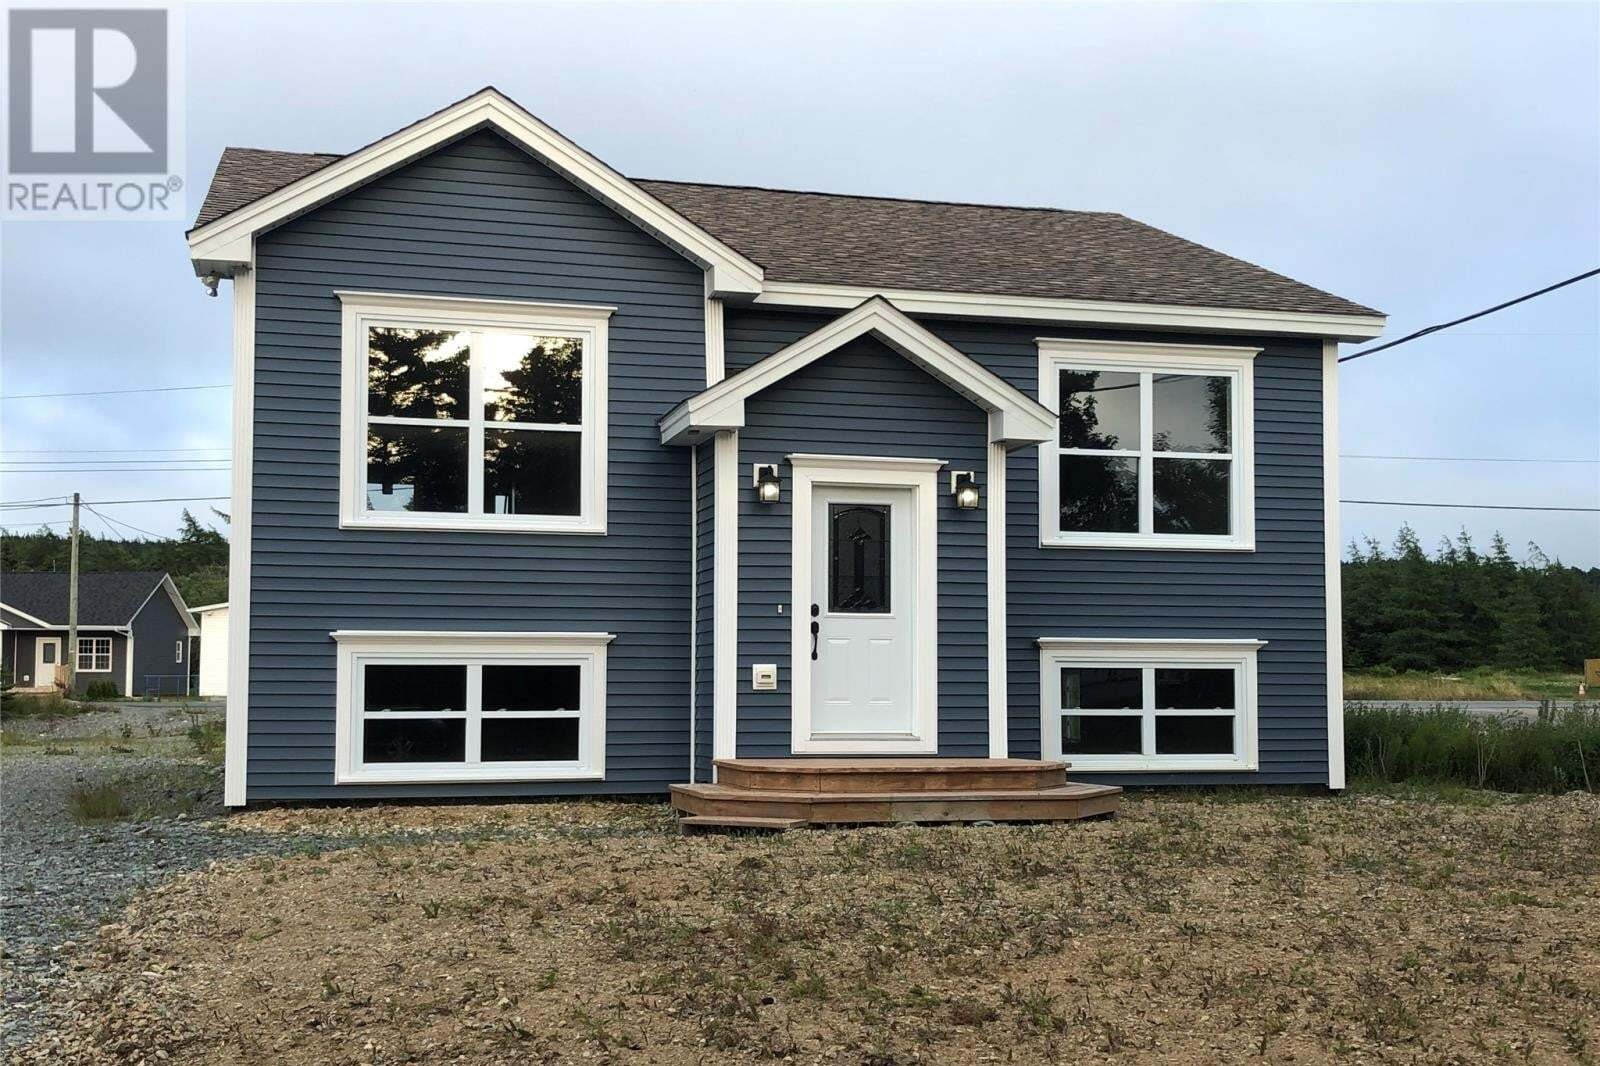 House for sale at 47 Boones Rd South River Newfoundland - MLS: 1217531